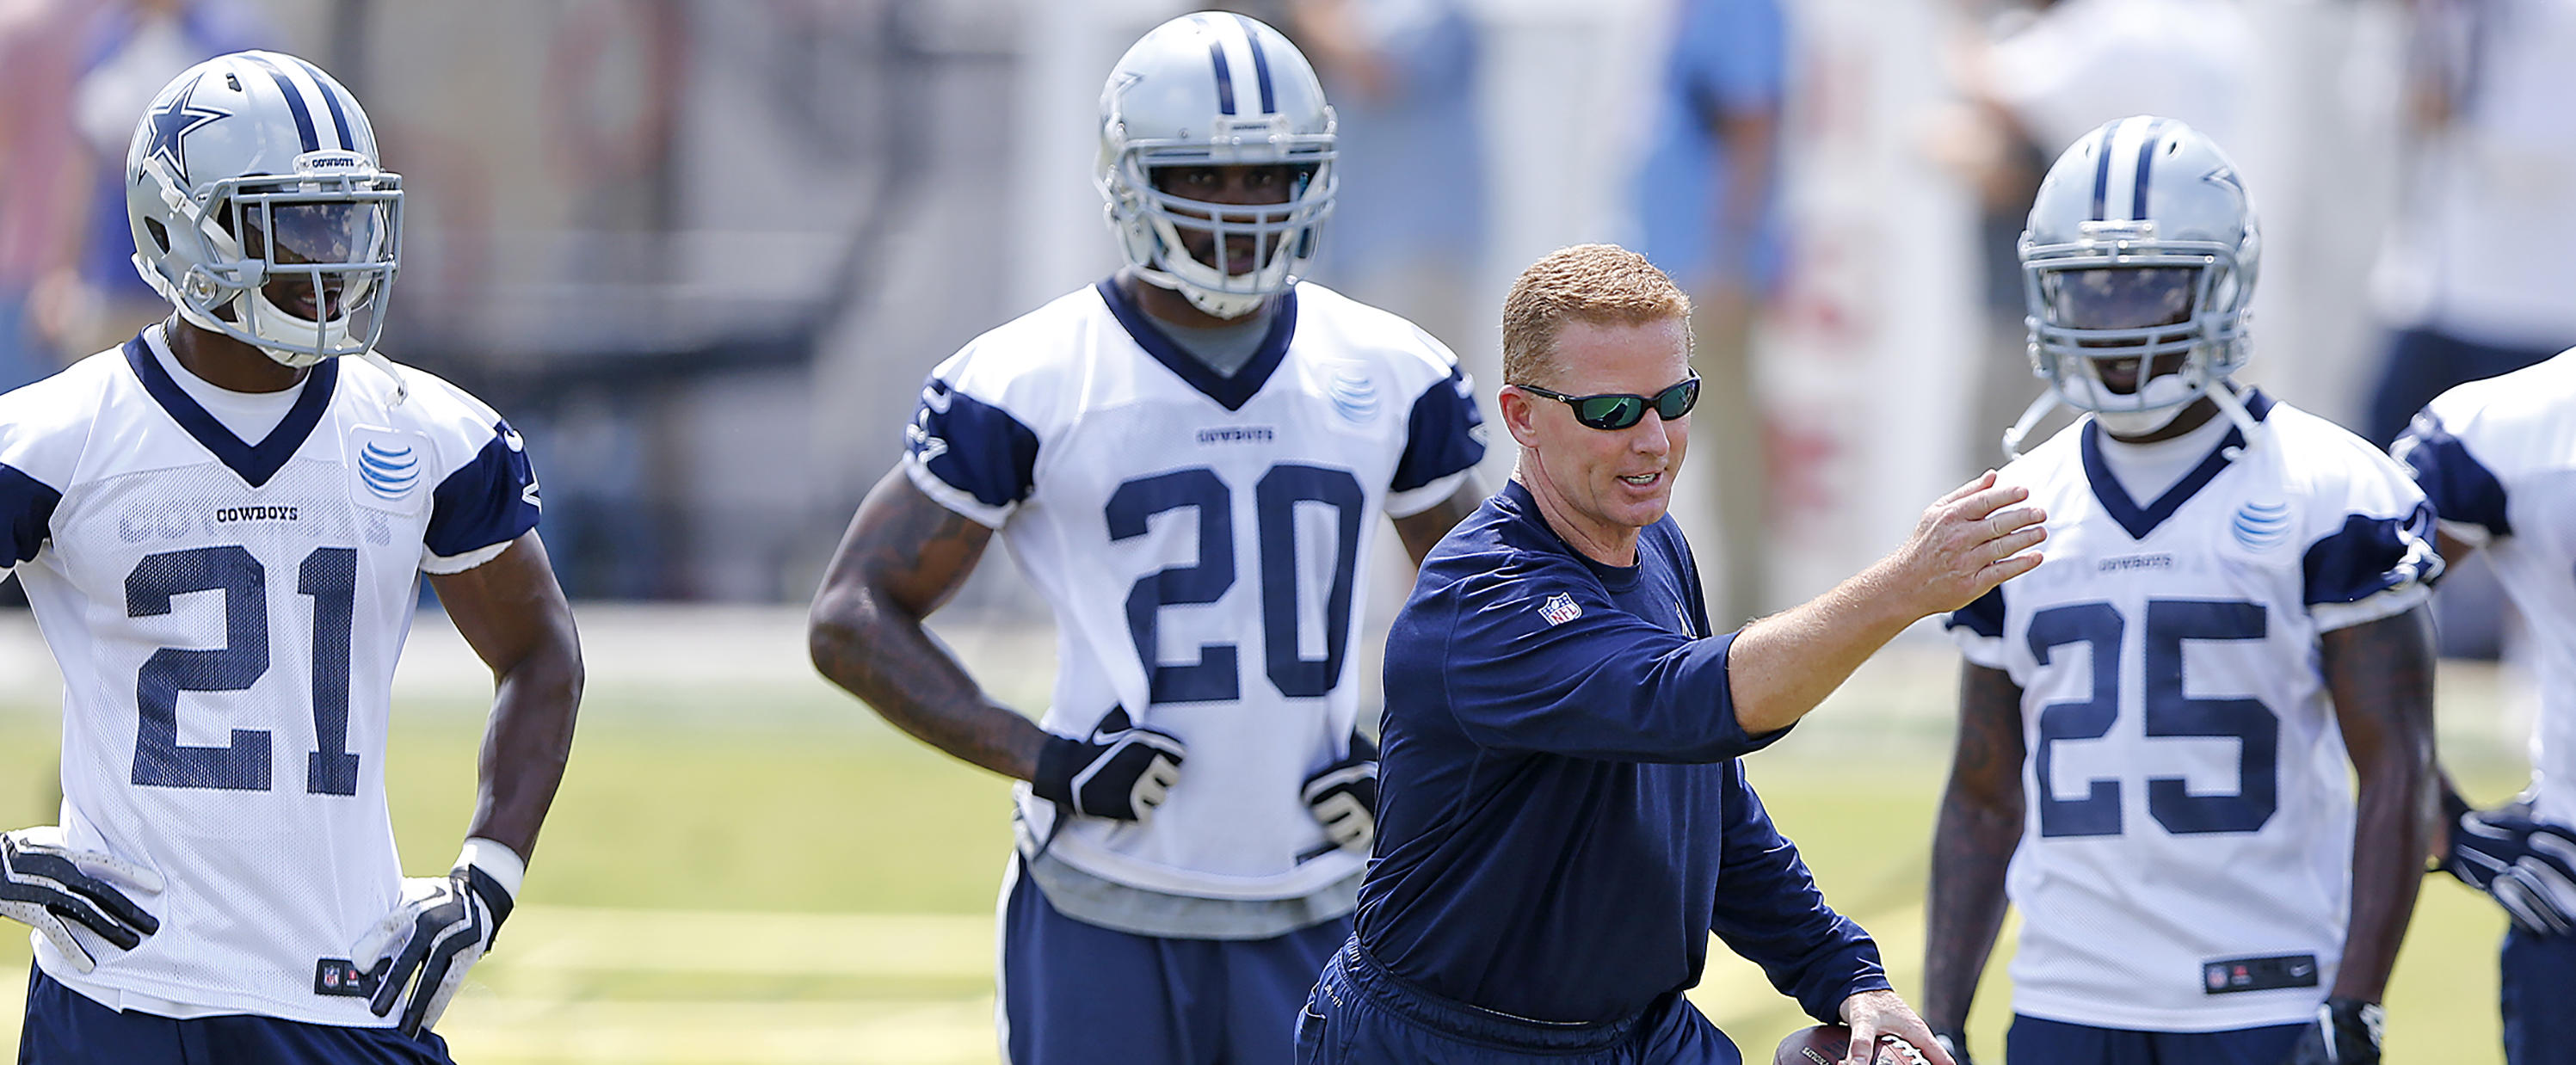 Cowboys Blog - Arrogant Offseason Leads To Week 7 Running Back Change For Cowboys 1